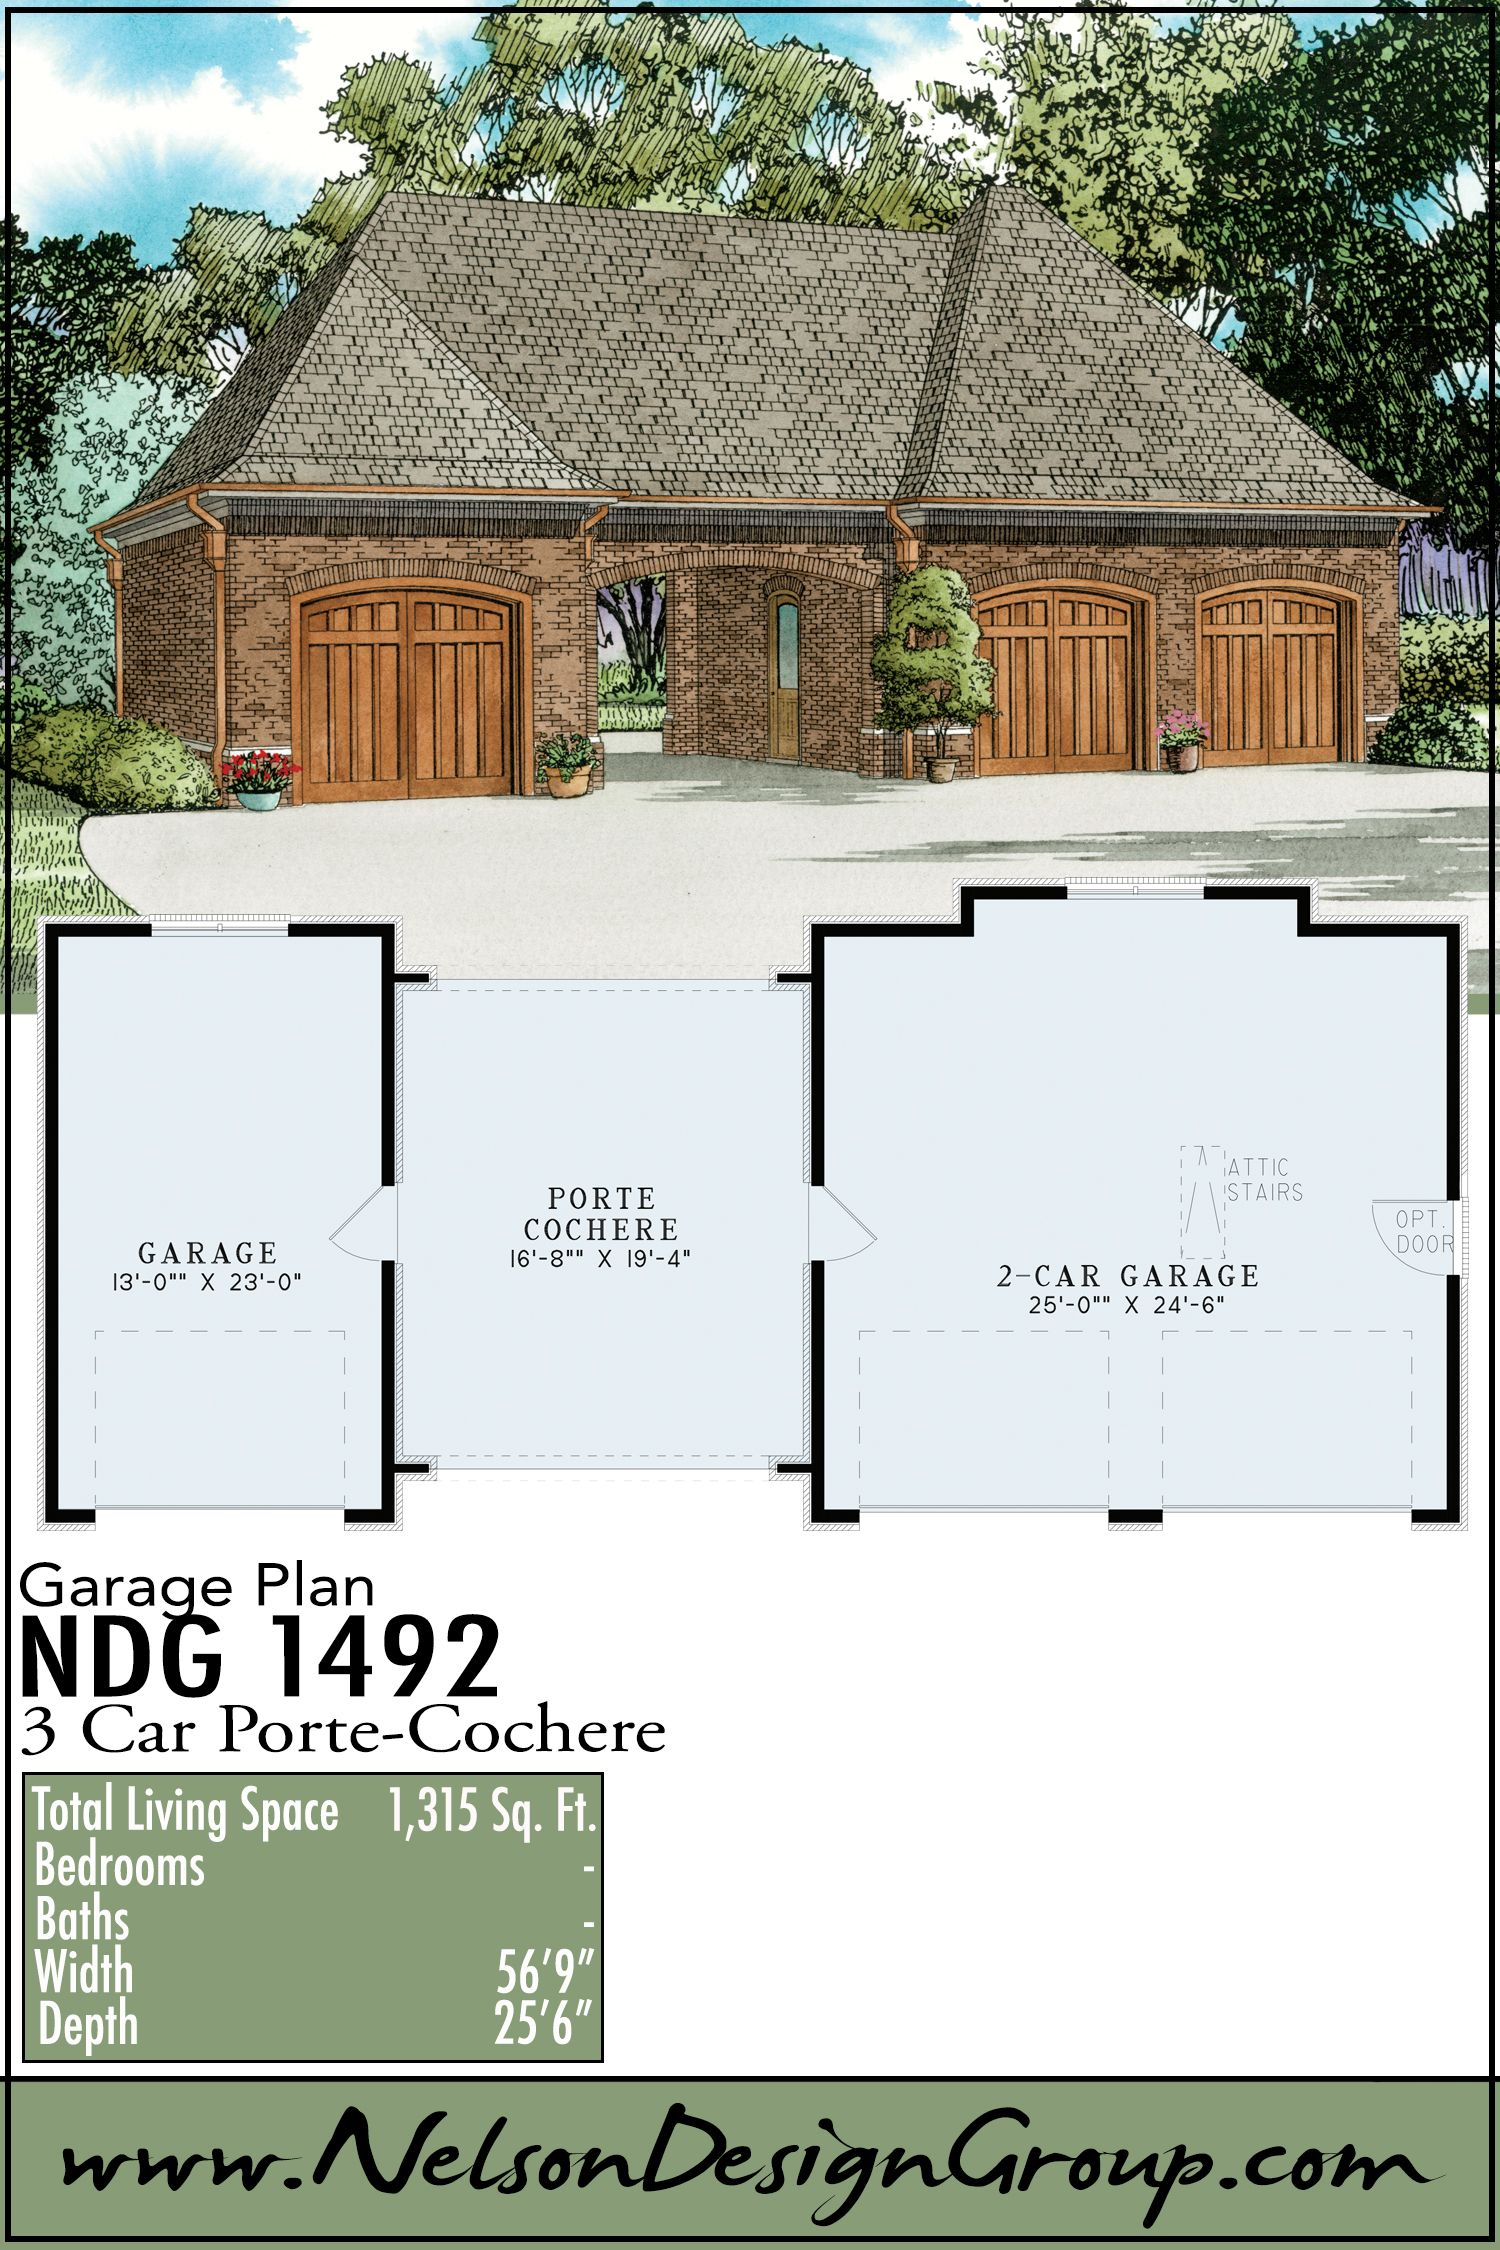 European House Plans With Pools on florida home plans with pools, mediterranean house plans with pools, craftsman house plans with pools, small house plans with pools, modern home plans with pools, mansion house plans with pools,